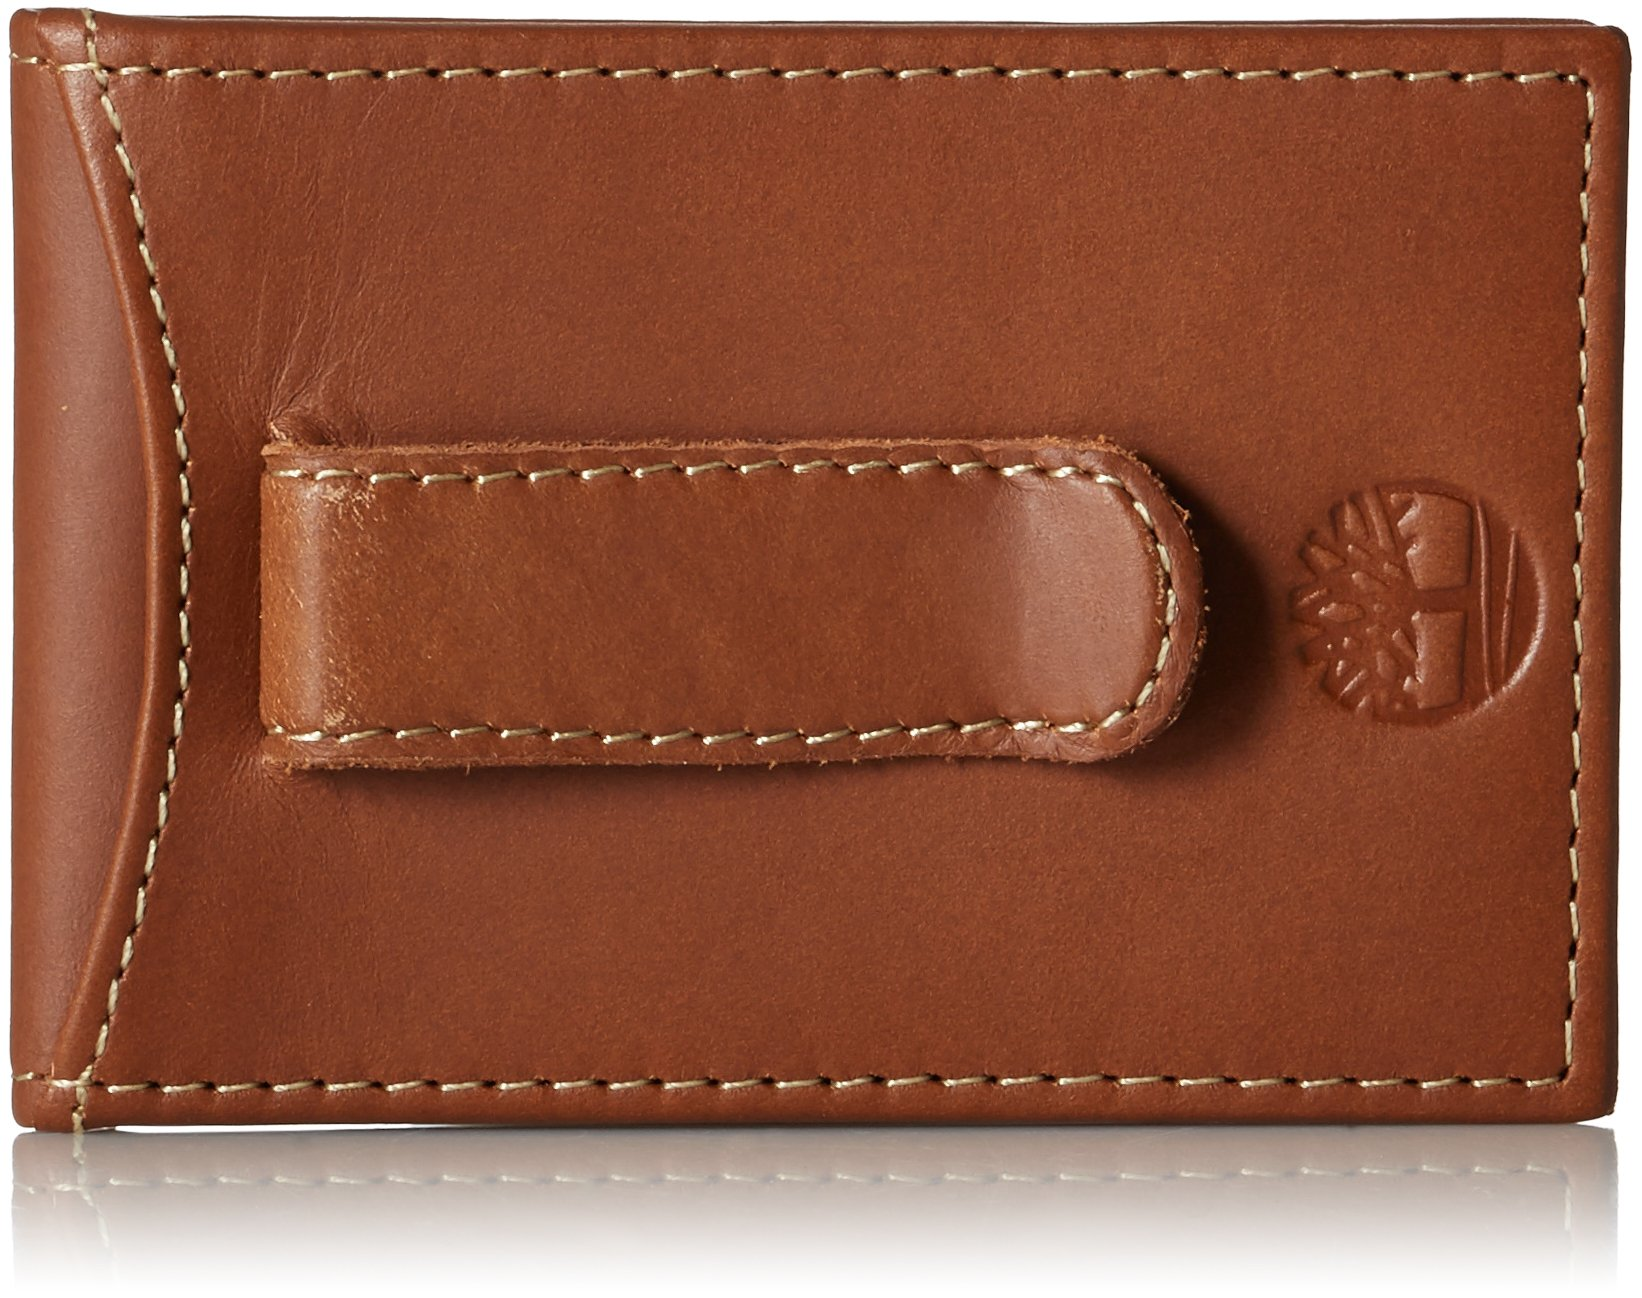 Timberland Minimalist Front Pocket Wallet